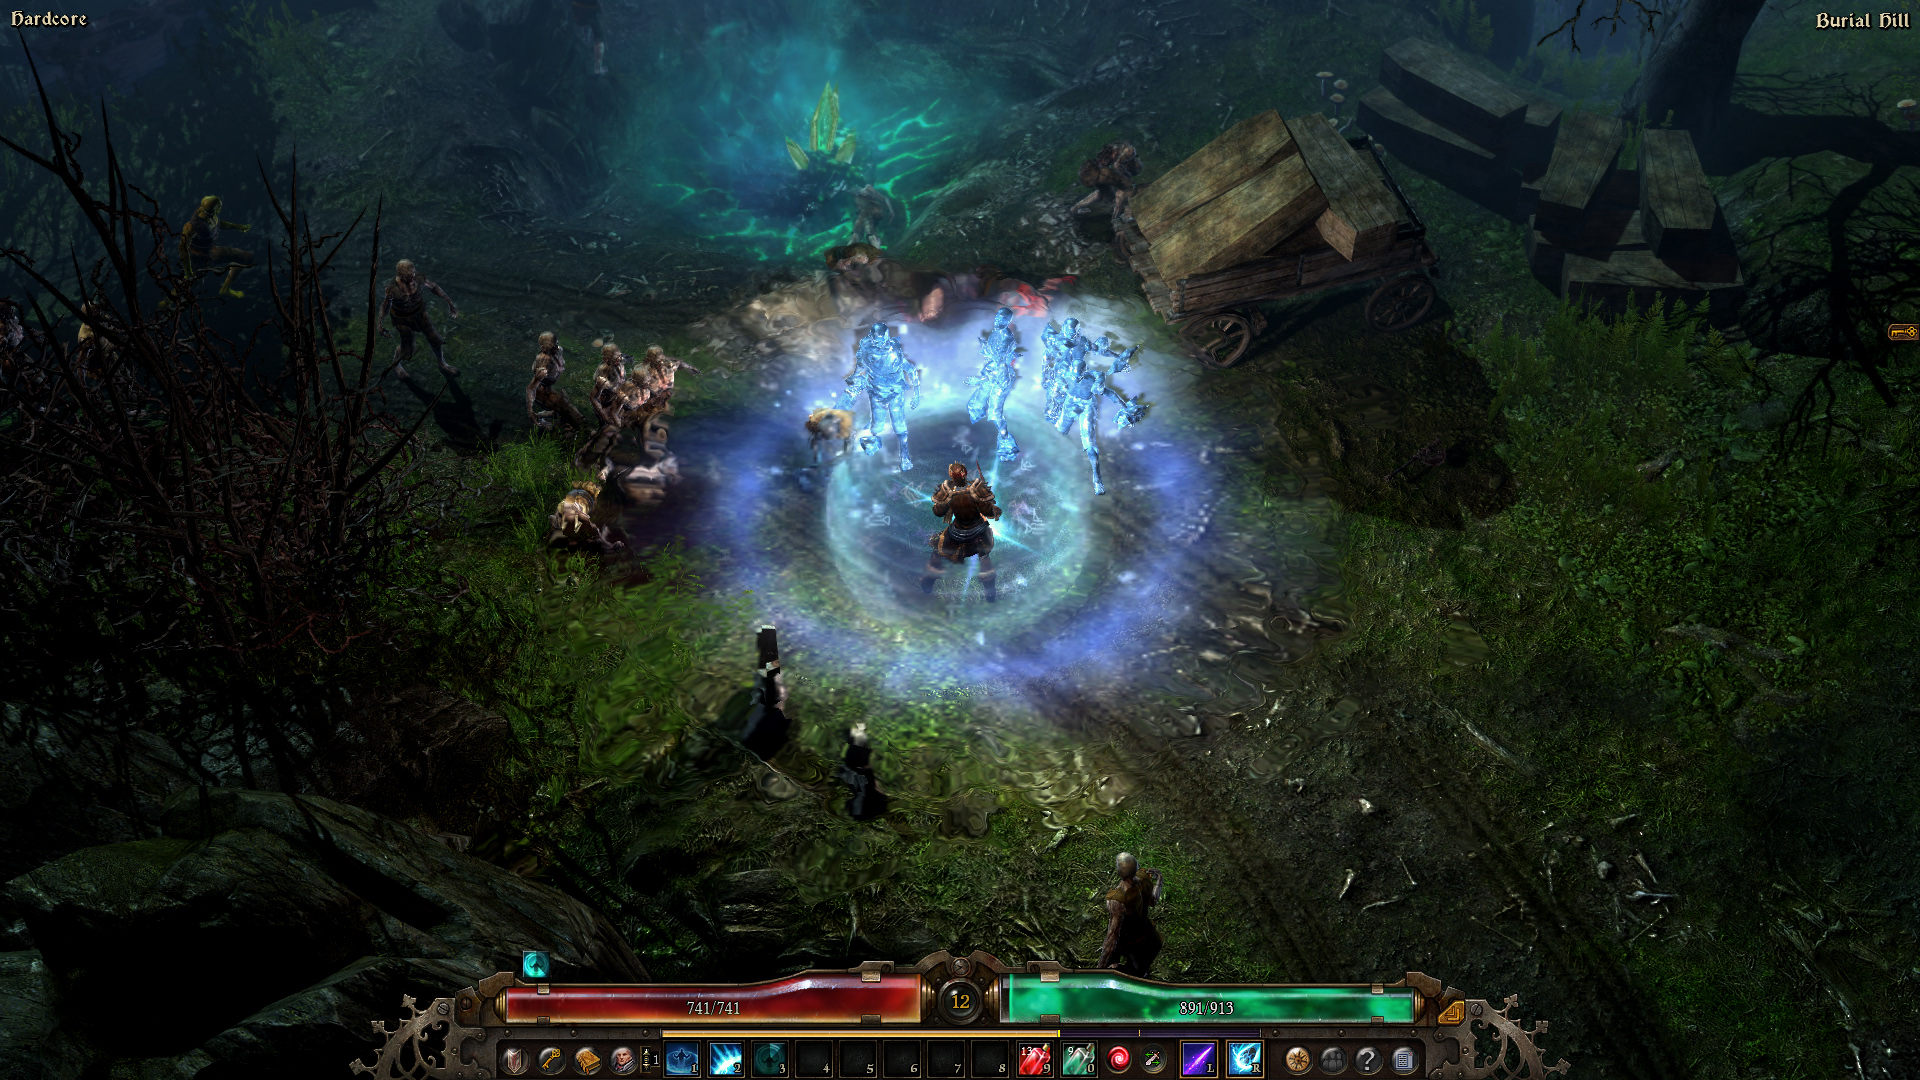 grim-dawn-screenshot